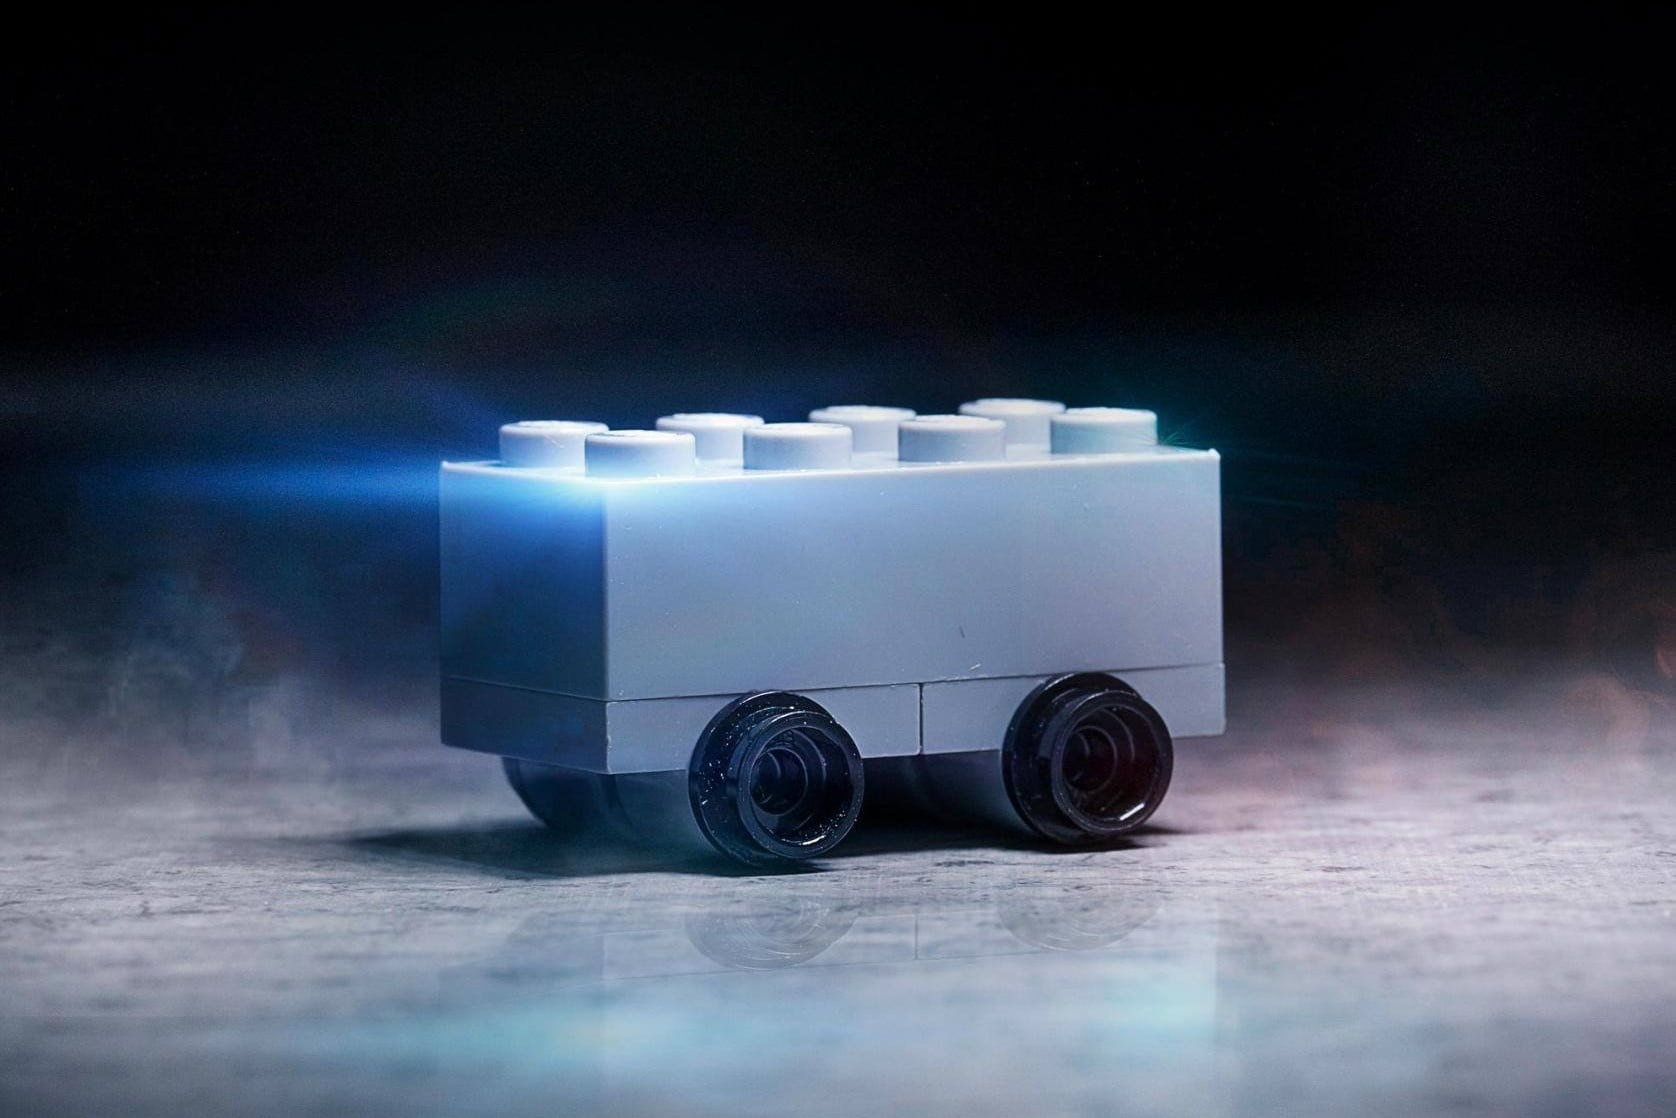 Lego pokes fun at Elon Musk with its own version of the Tesla Cybertruck